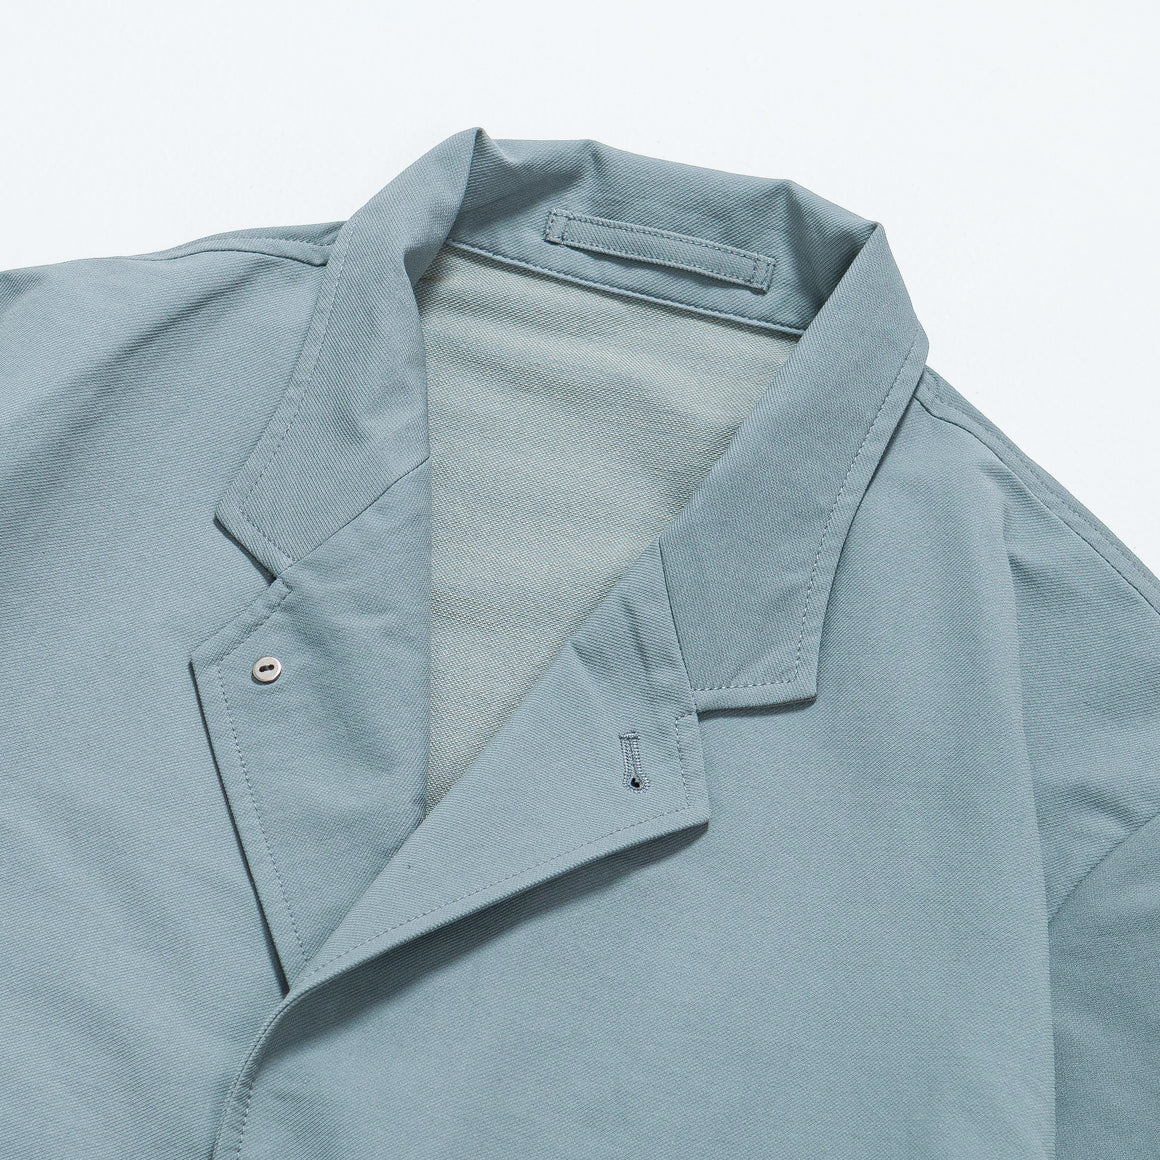 Nanamica - BREATH TUNE Club Jacket - Gray - Up There